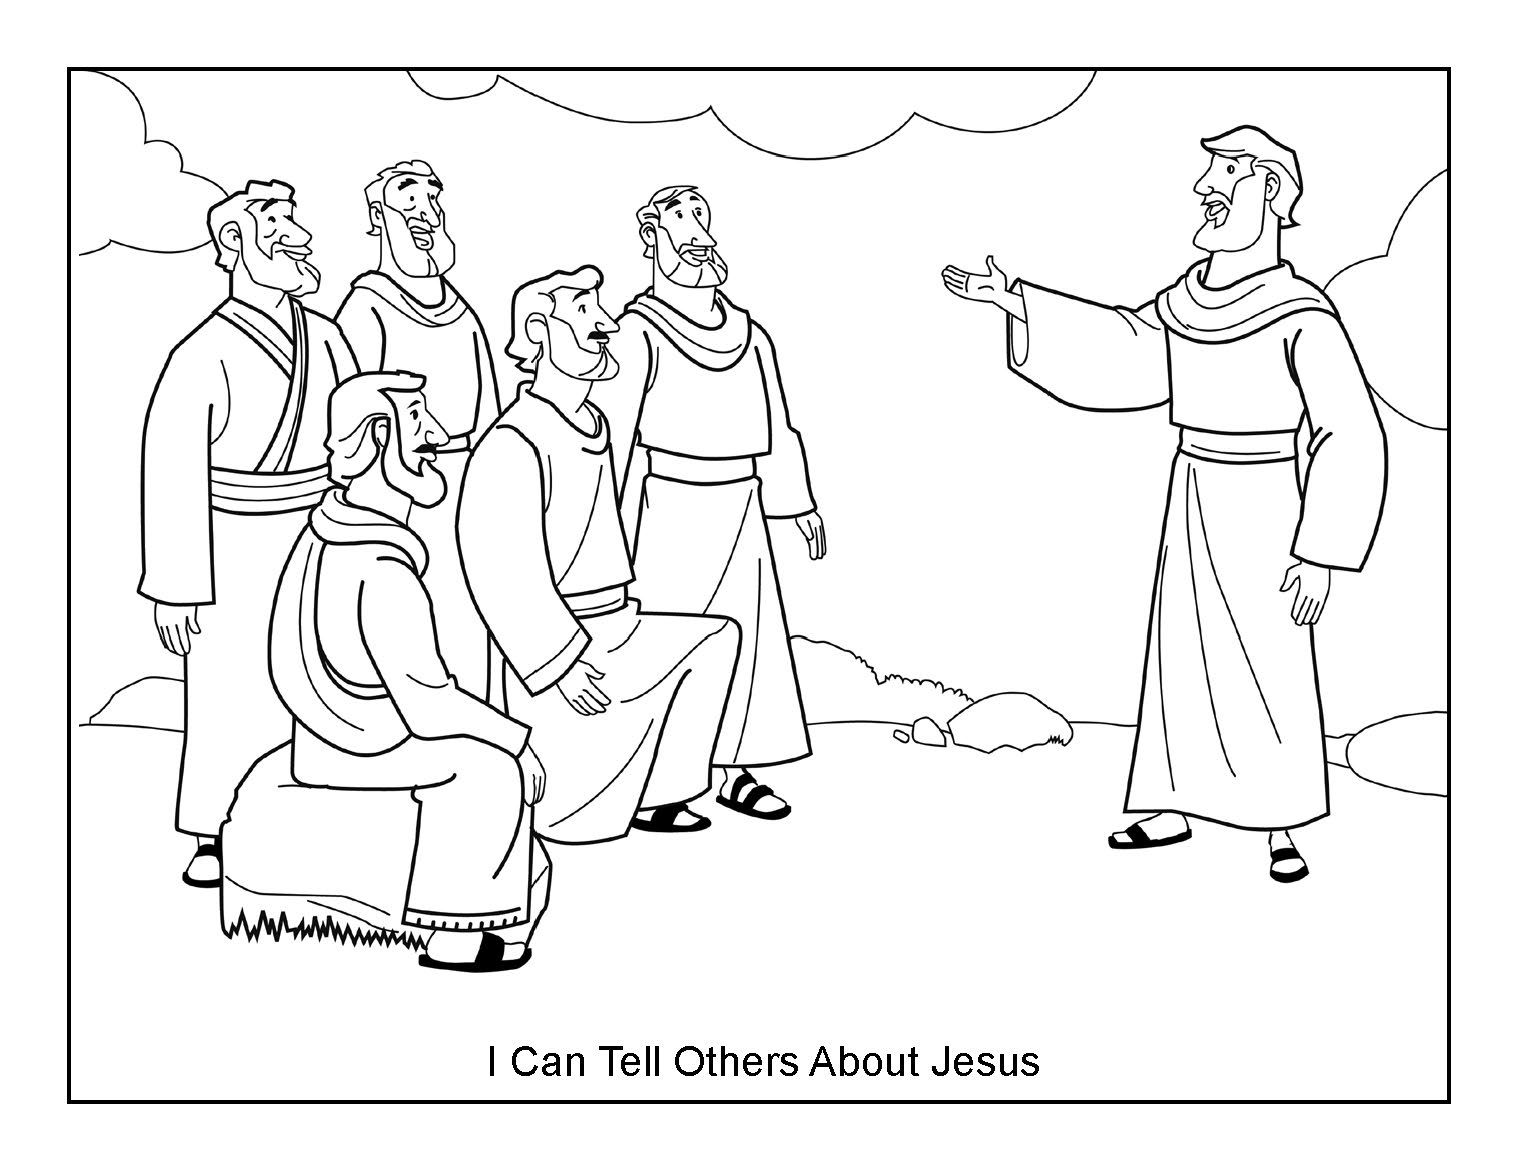 I Can Tell Others About Jesus Coloring Page On Sunday School Zone Jesus